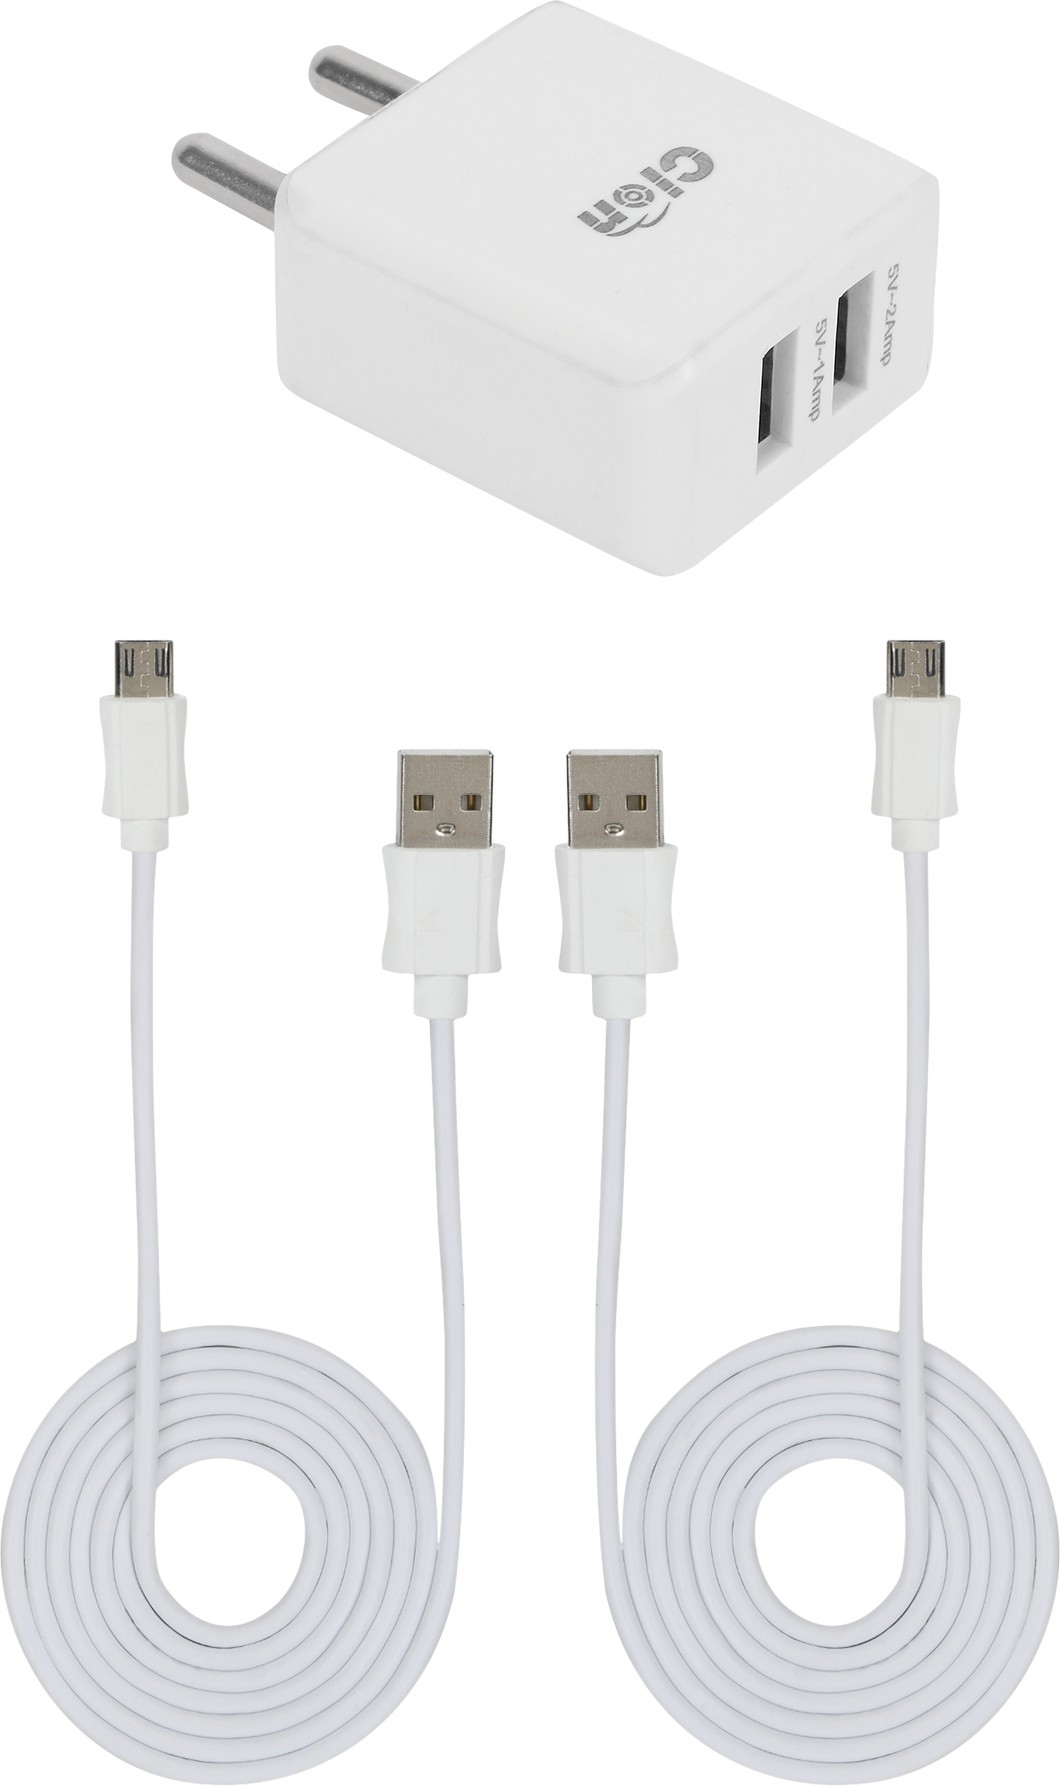 Cion Dual Port USB Adapter with 2 Data/Sync Cables (1 mtr) for K6 Mobile Charger(White)